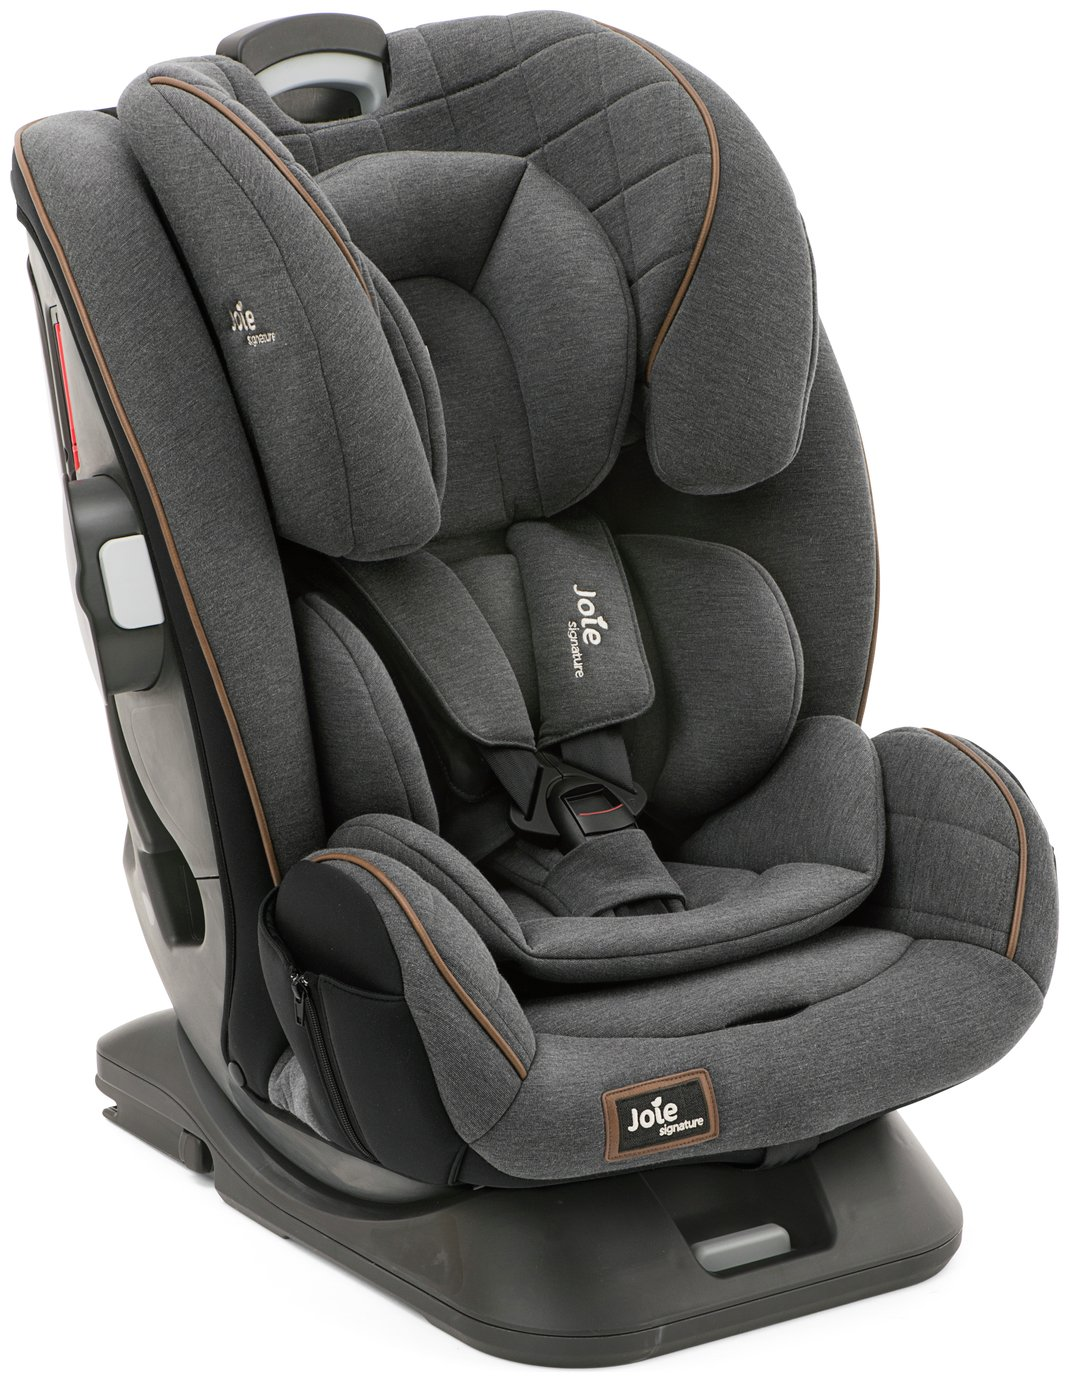 Joie Isofix Base Uk Joie Every Stage Fx Review Mother Baby